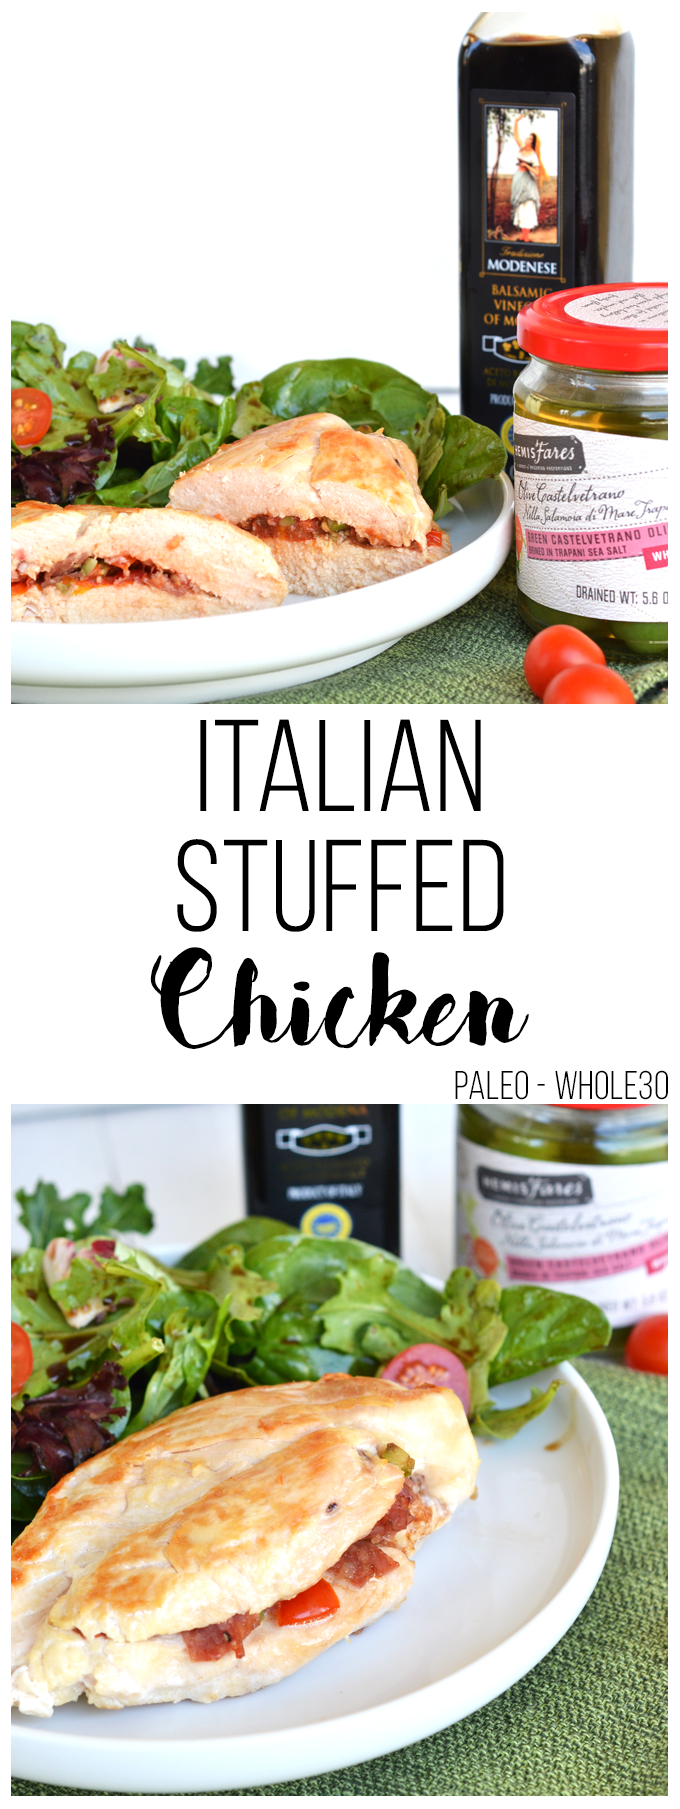 This Italian Stuffed Chicken is the perfect weeknight meal & a great way to add flavor to chicken breasts!